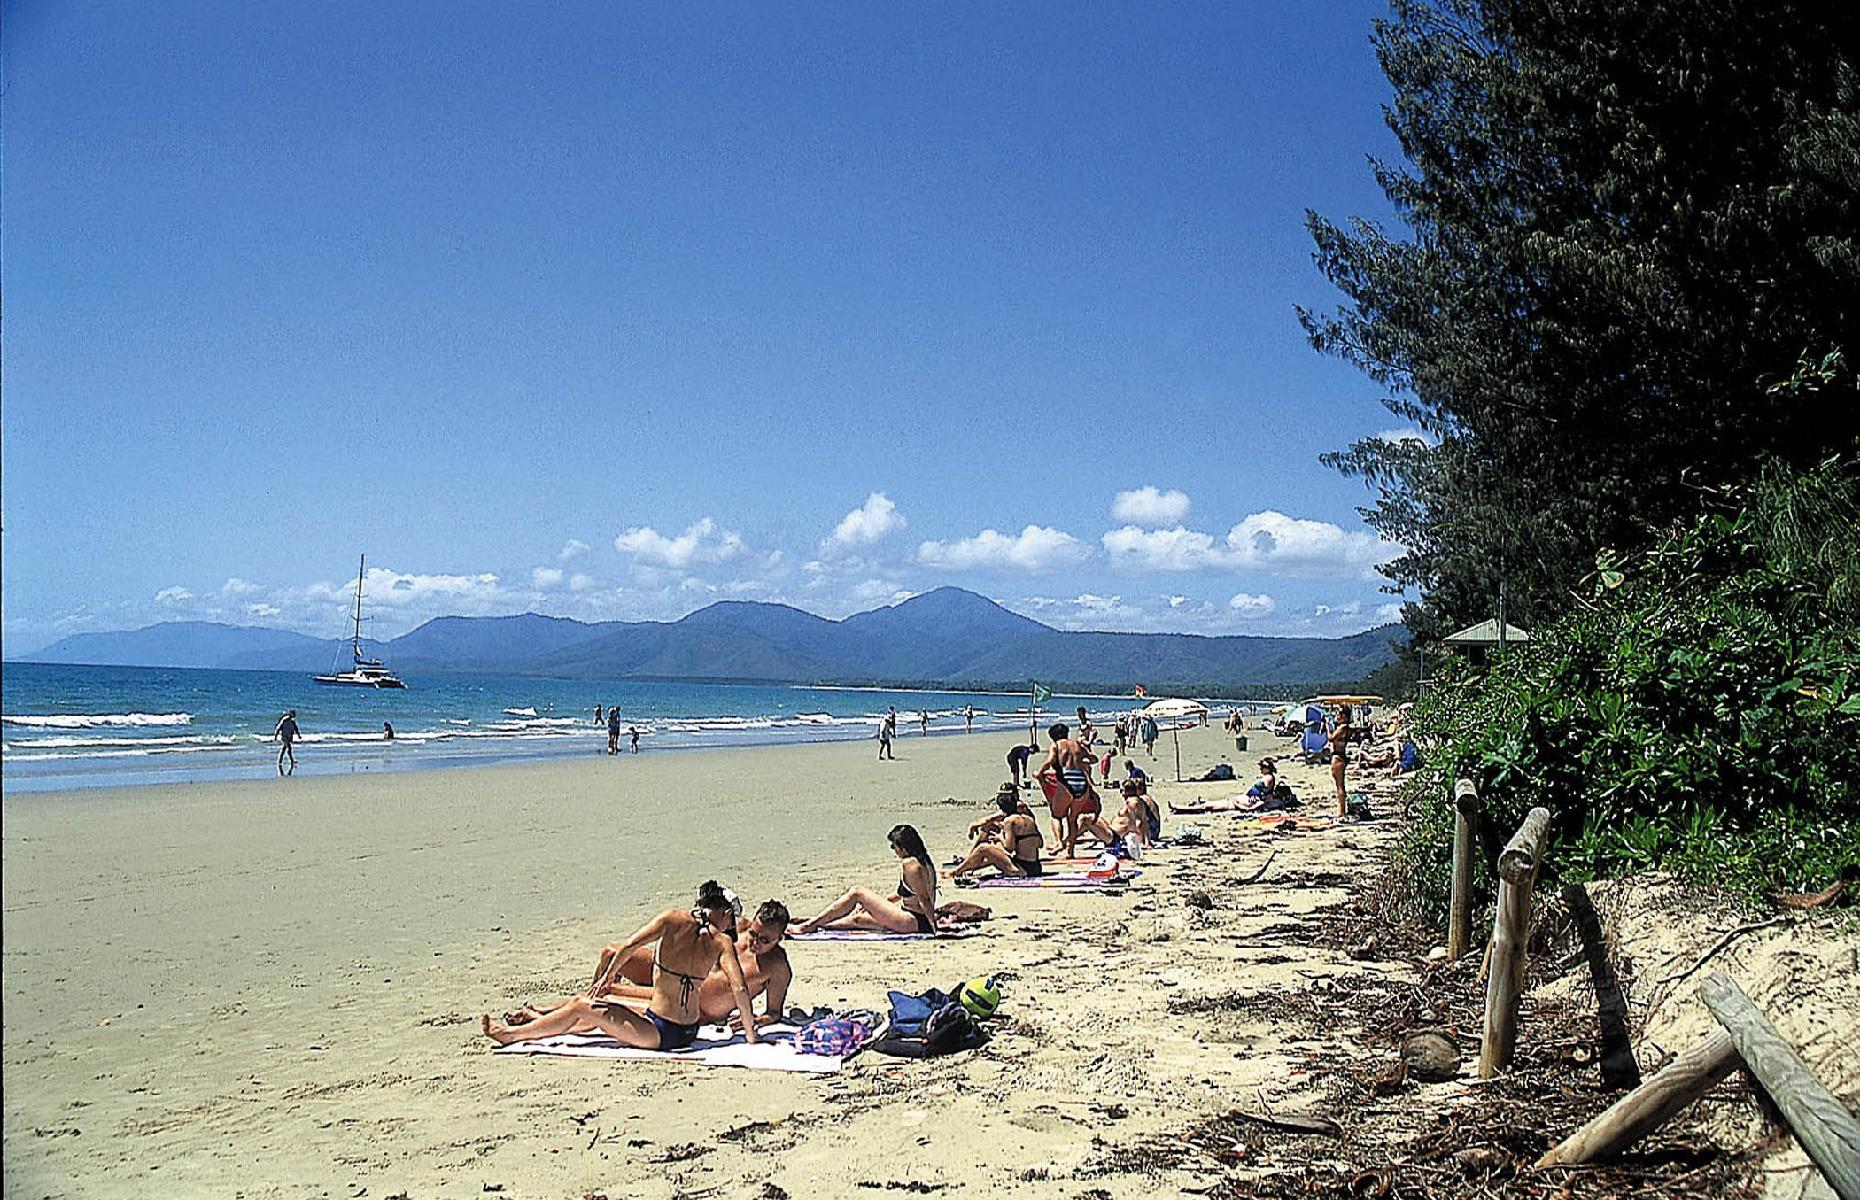 Slide 37 of 38: The world continued to shrink in this decade too, with families who were wealthy enough making bucket-list-style trips and exploring all corners of the globe. Here families and couples sunbathe on Four Mile Beach in Port Douglas, Queensland, a jumping-off point for the Great Barrier Reef. Inspired? Check out these incredible places you won't believe are in Australia.